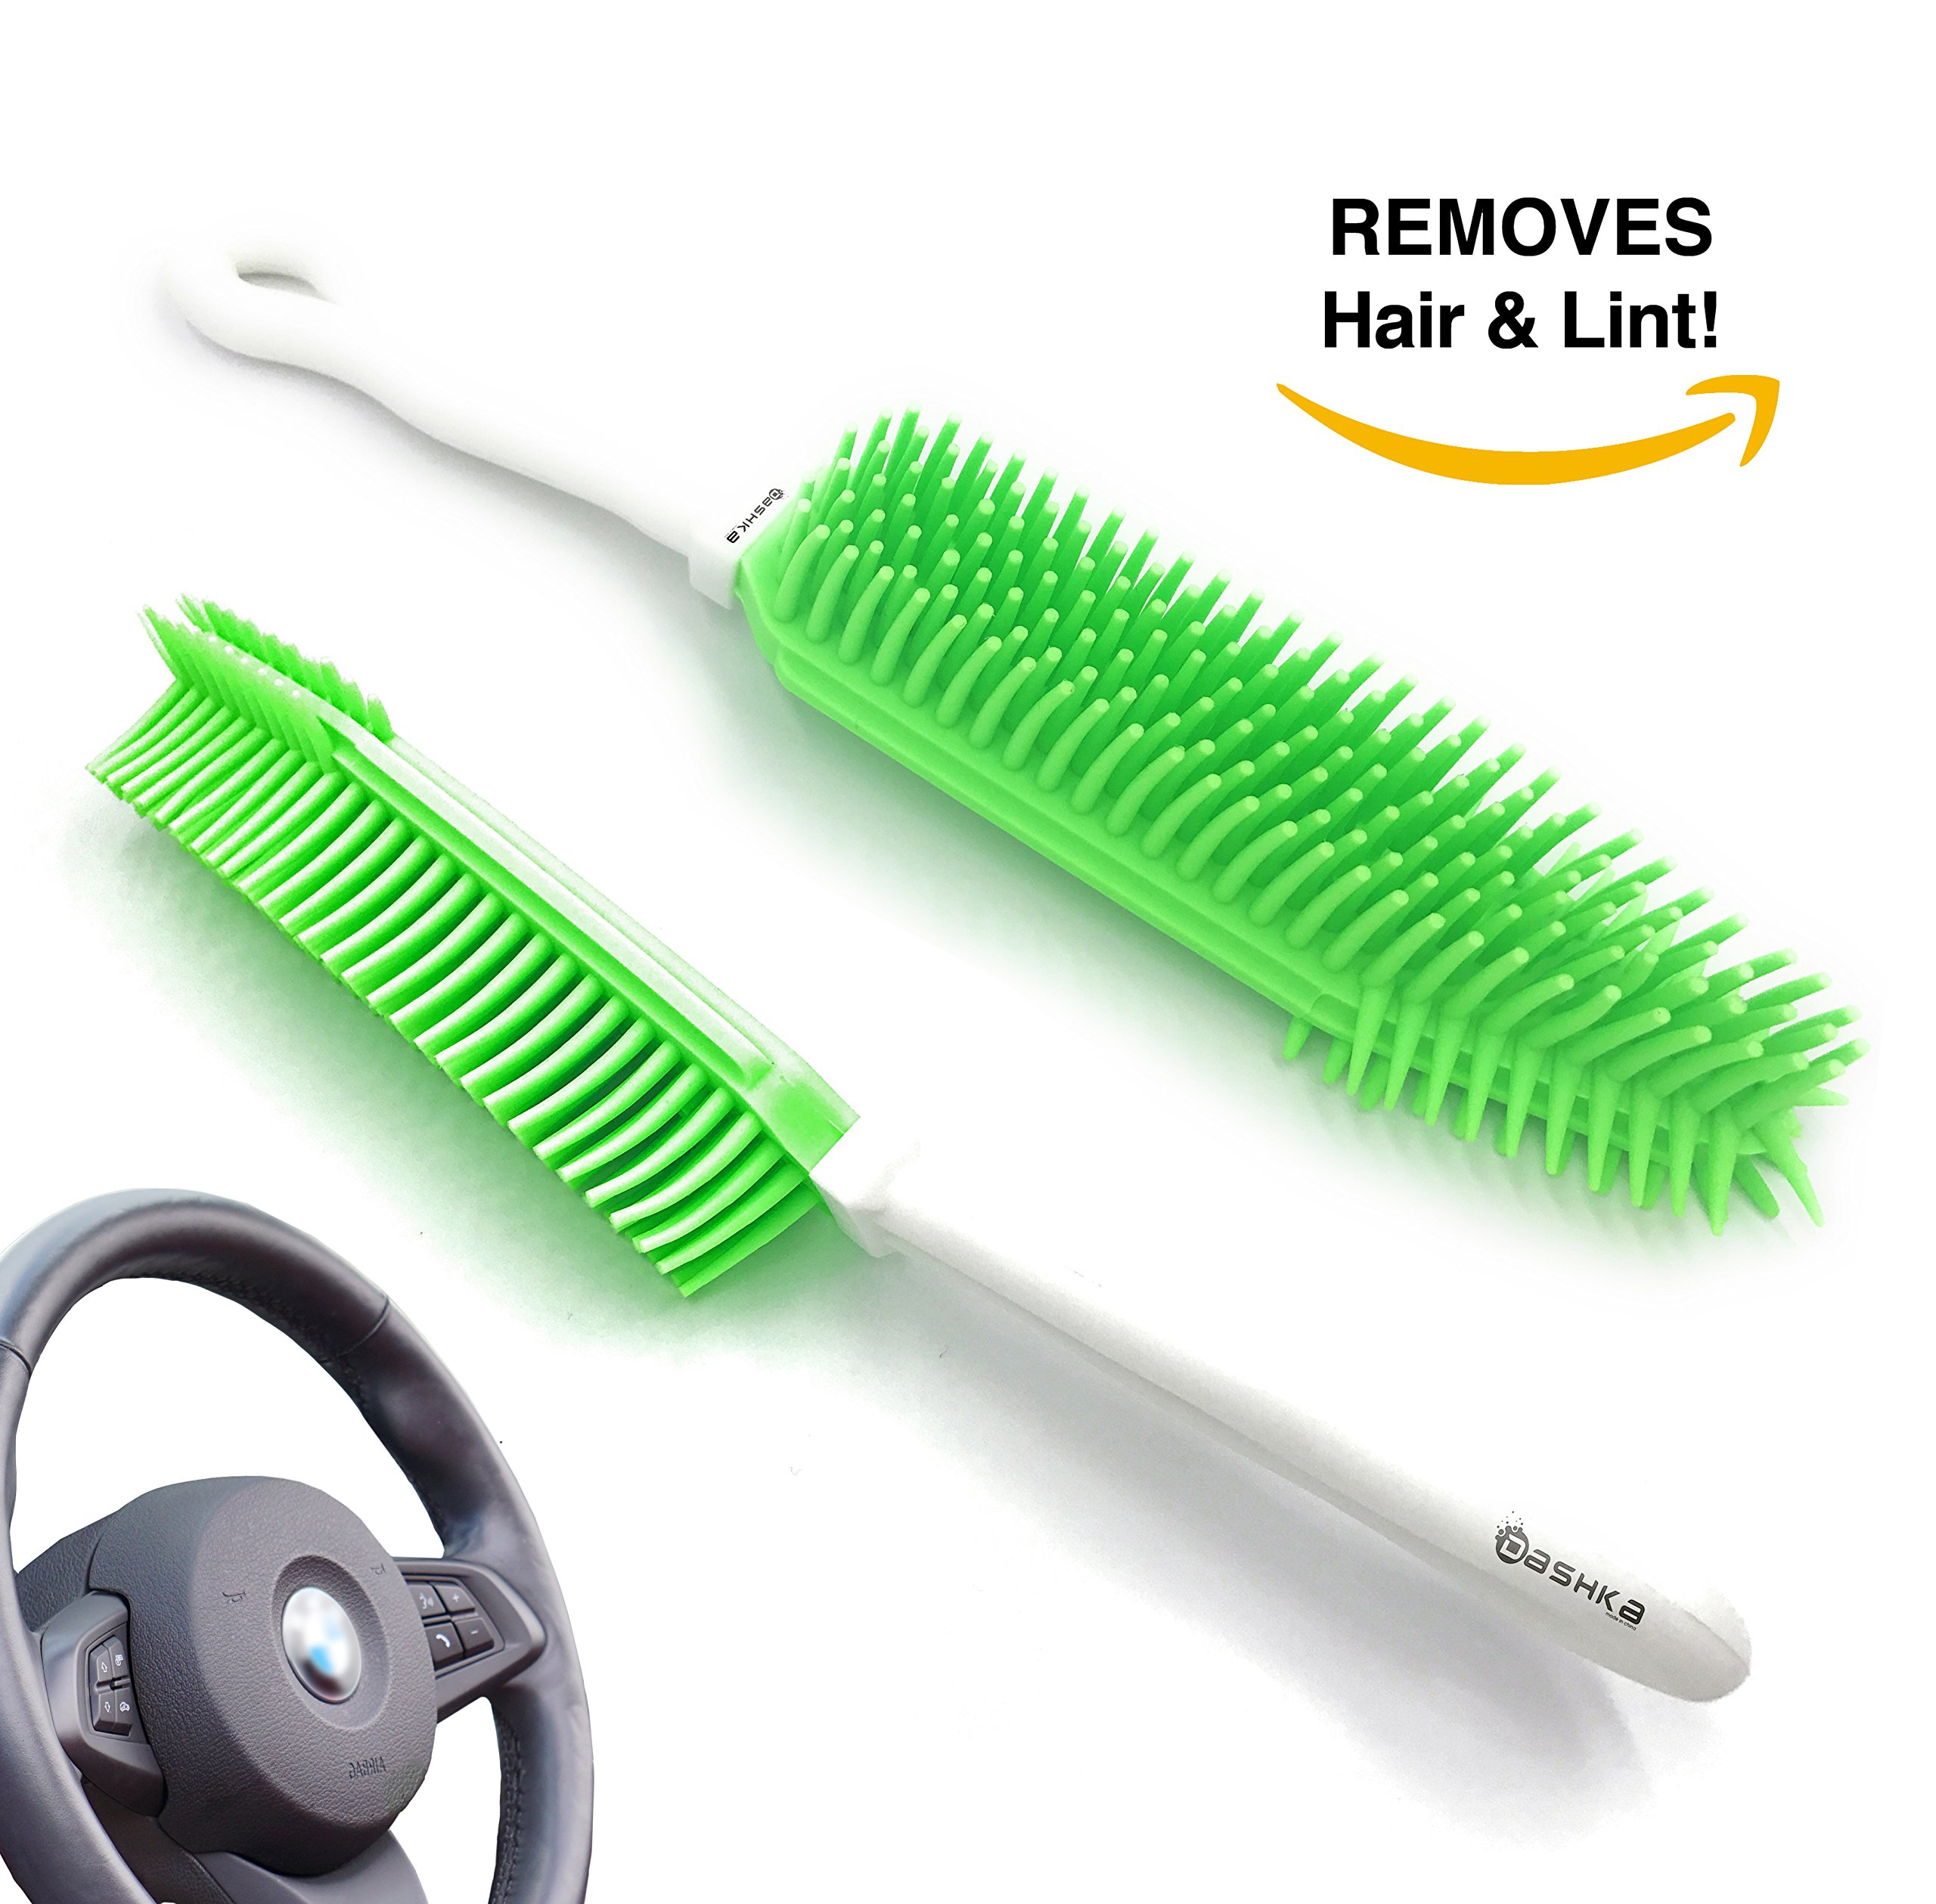 Best Car & Auto Detailing Brush for Pet Hair Removal and Car Upholstery Cleaner - Best Pet Hair Remover for Dog And Cat Hair - Great On Furniture (Bedding, Carpets, Blankets) – Use As A Lint Remover f by Dasksha (Image #7)